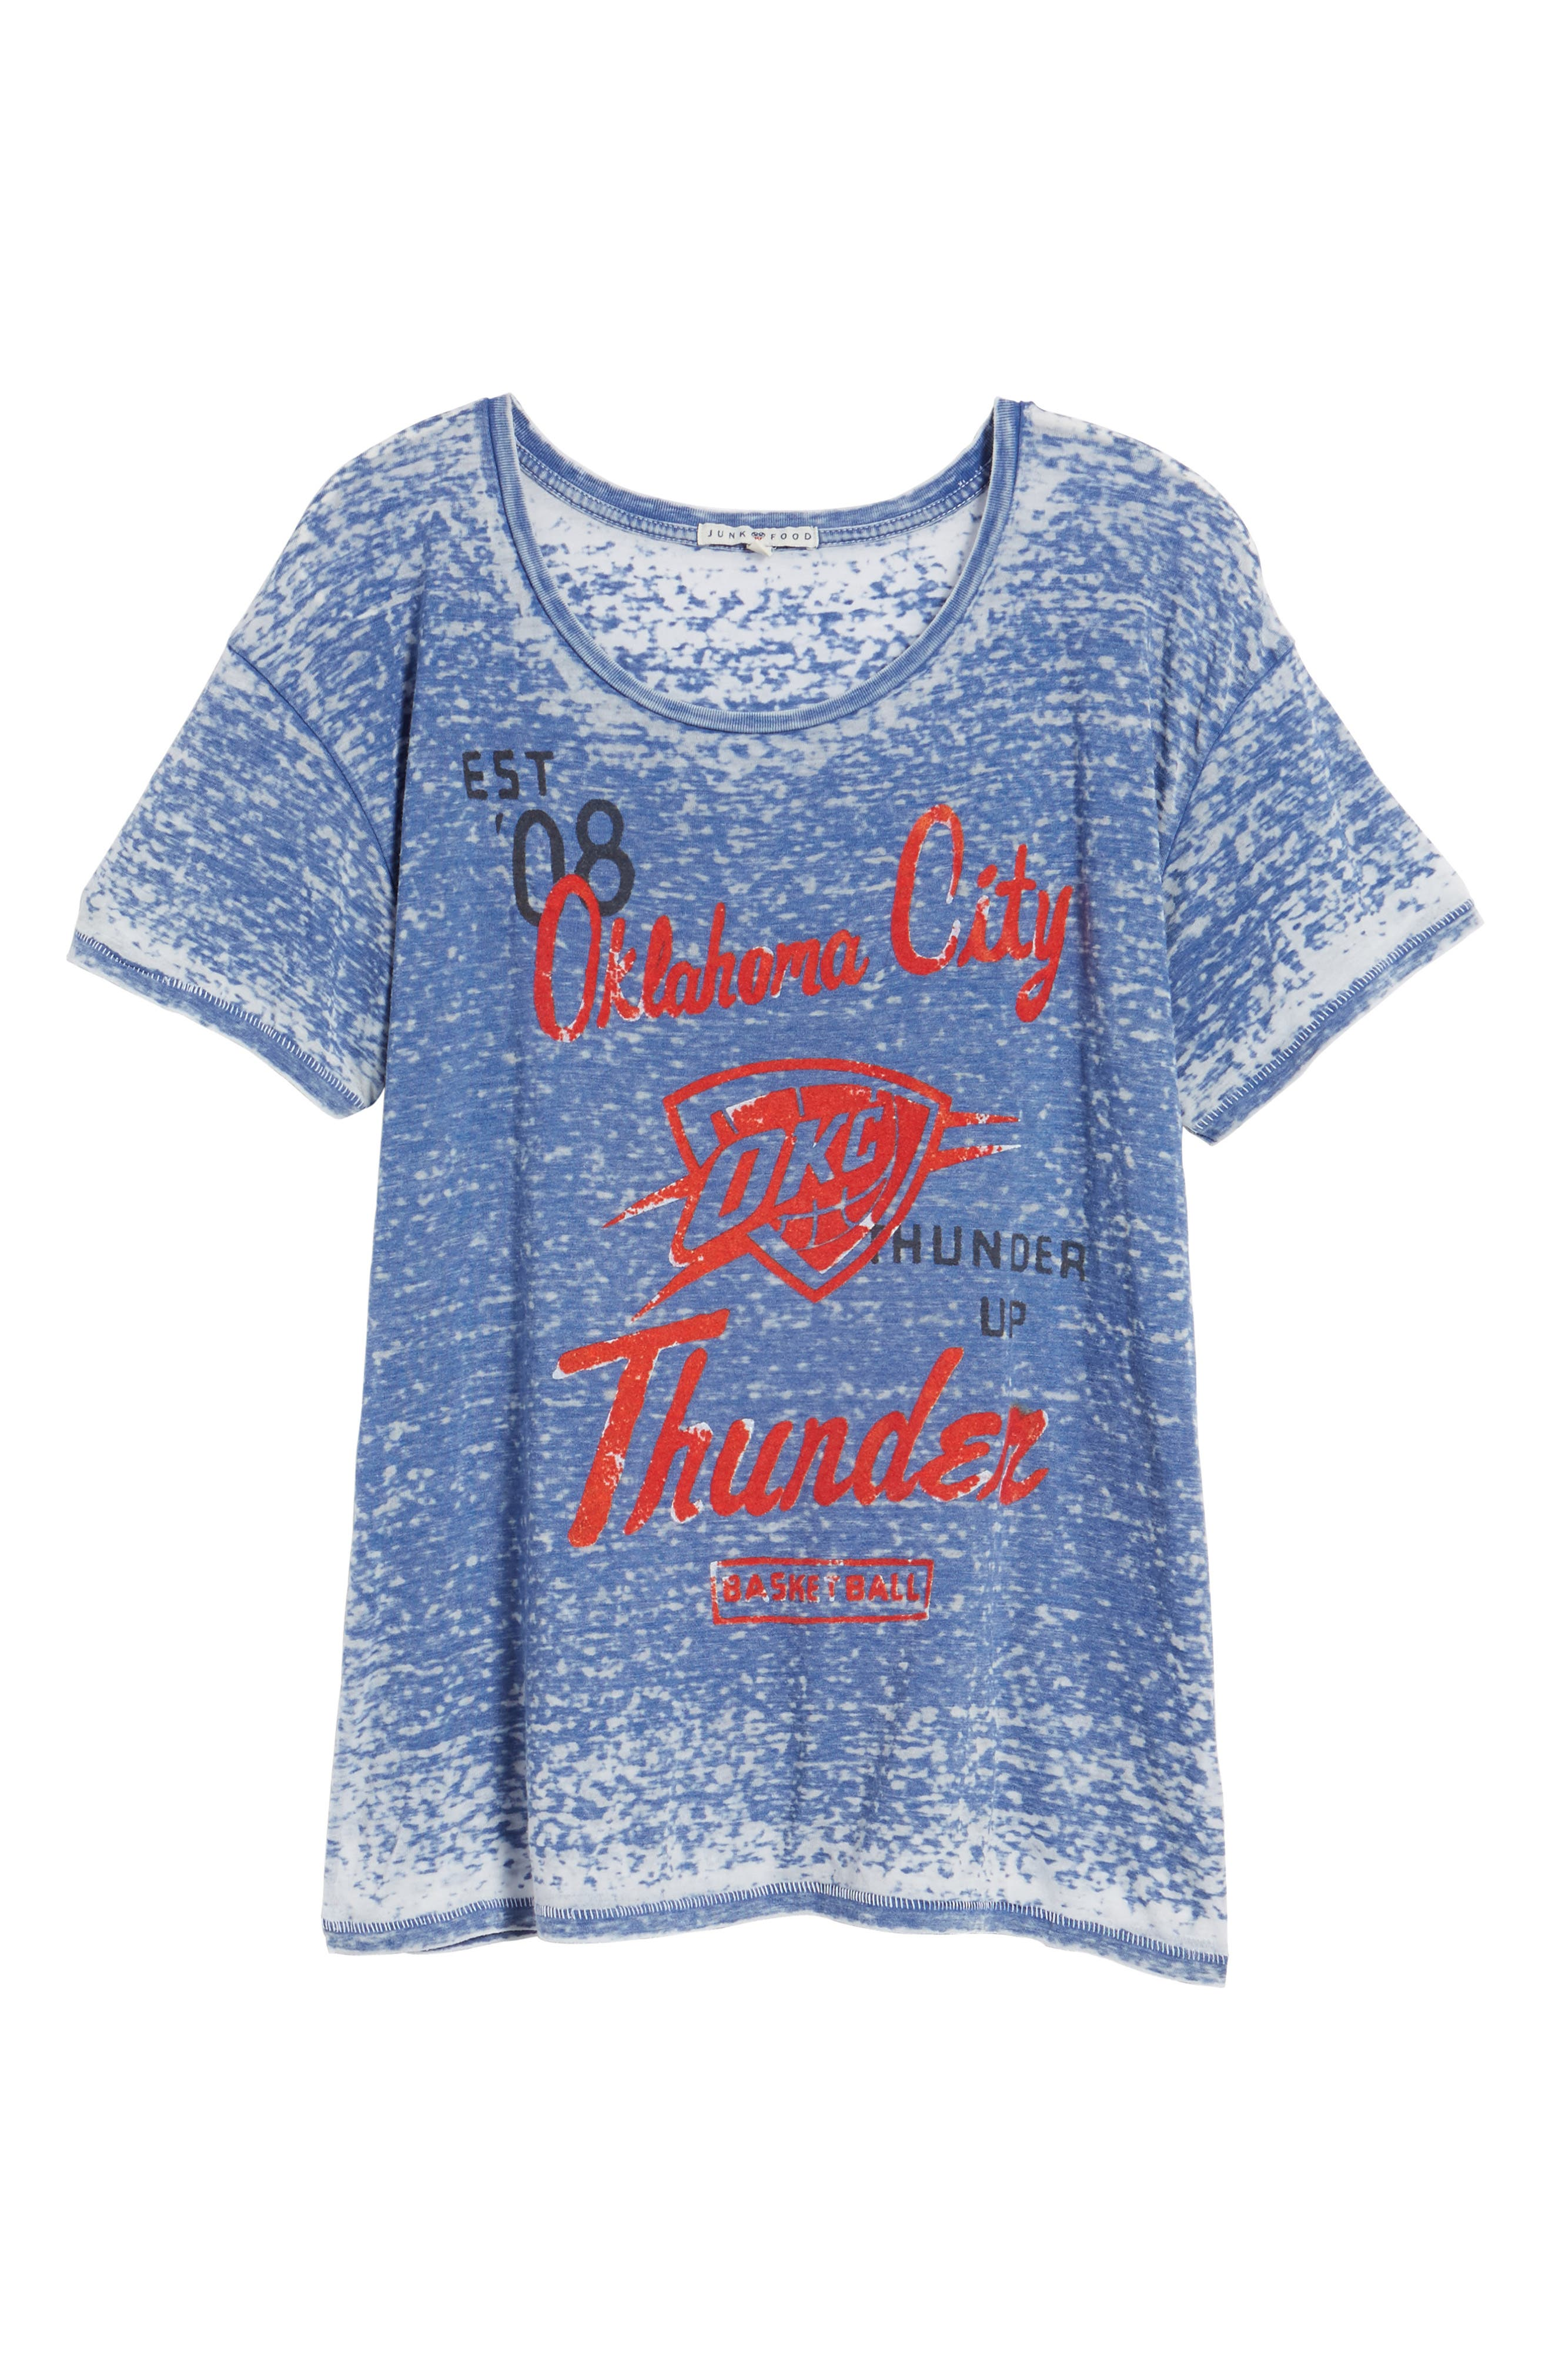 NBA Oklahoma City Thunder Burnout Tee,                             Alternate thumbnail 6, color,                             497